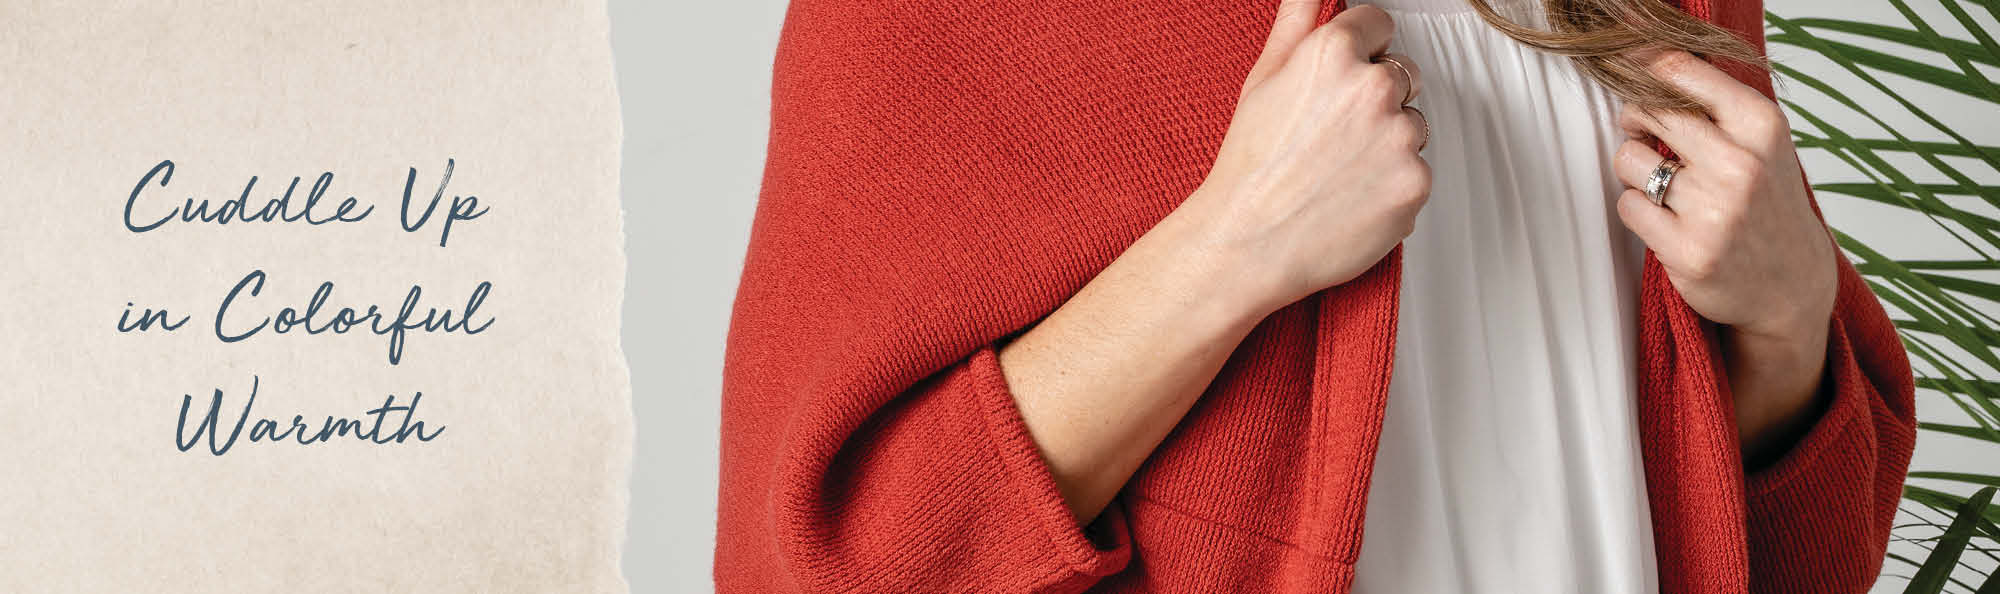 Cuddle up in colorful warmth. Woman in a soft red wrap.